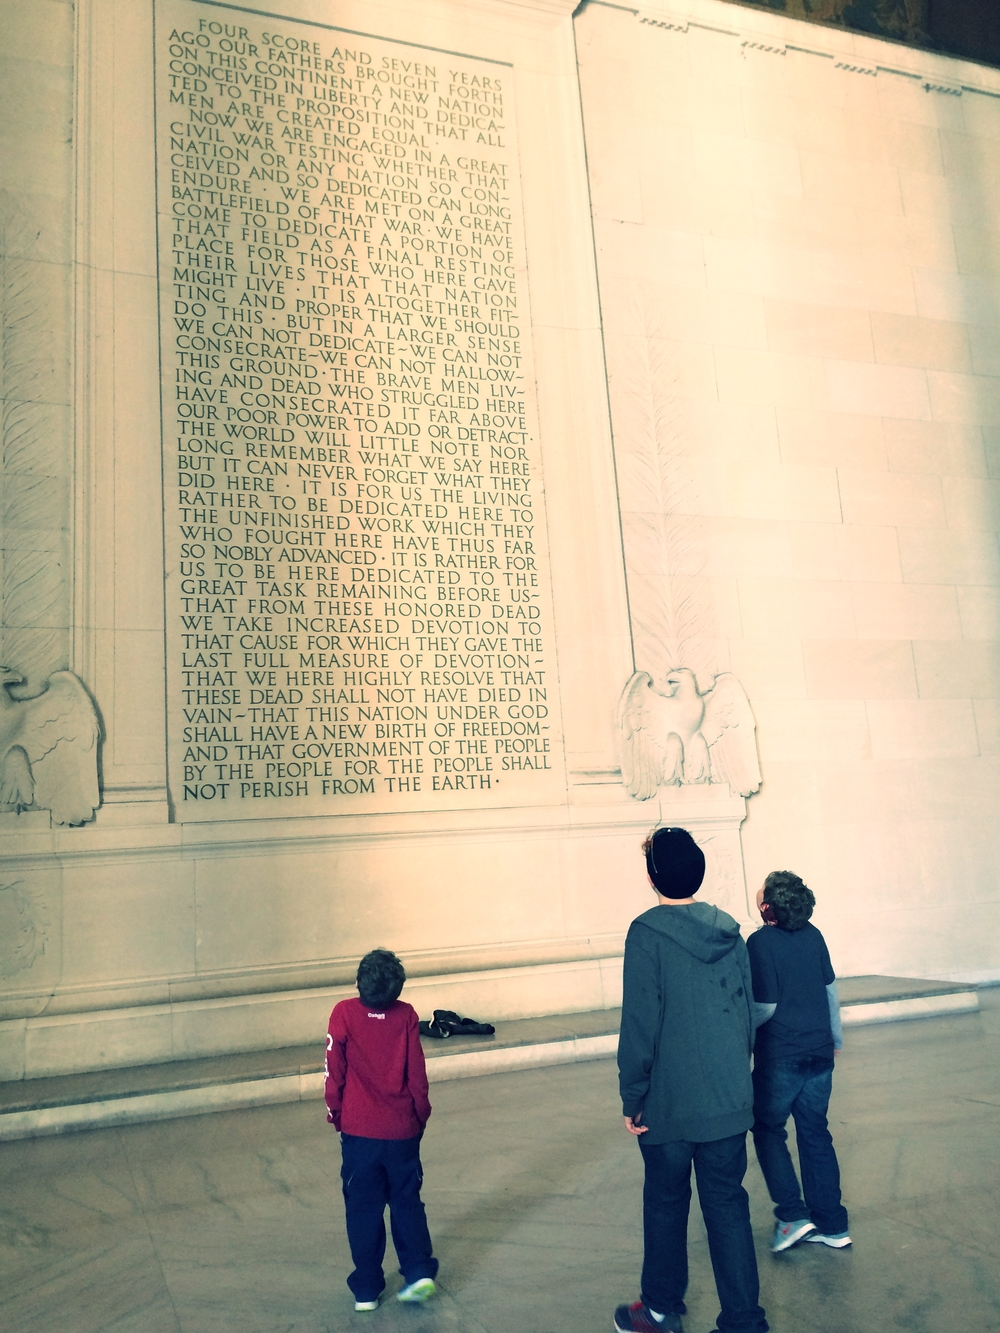 Jude, Ben and Sam at the Lincoln Memorial, Washington, D.C.